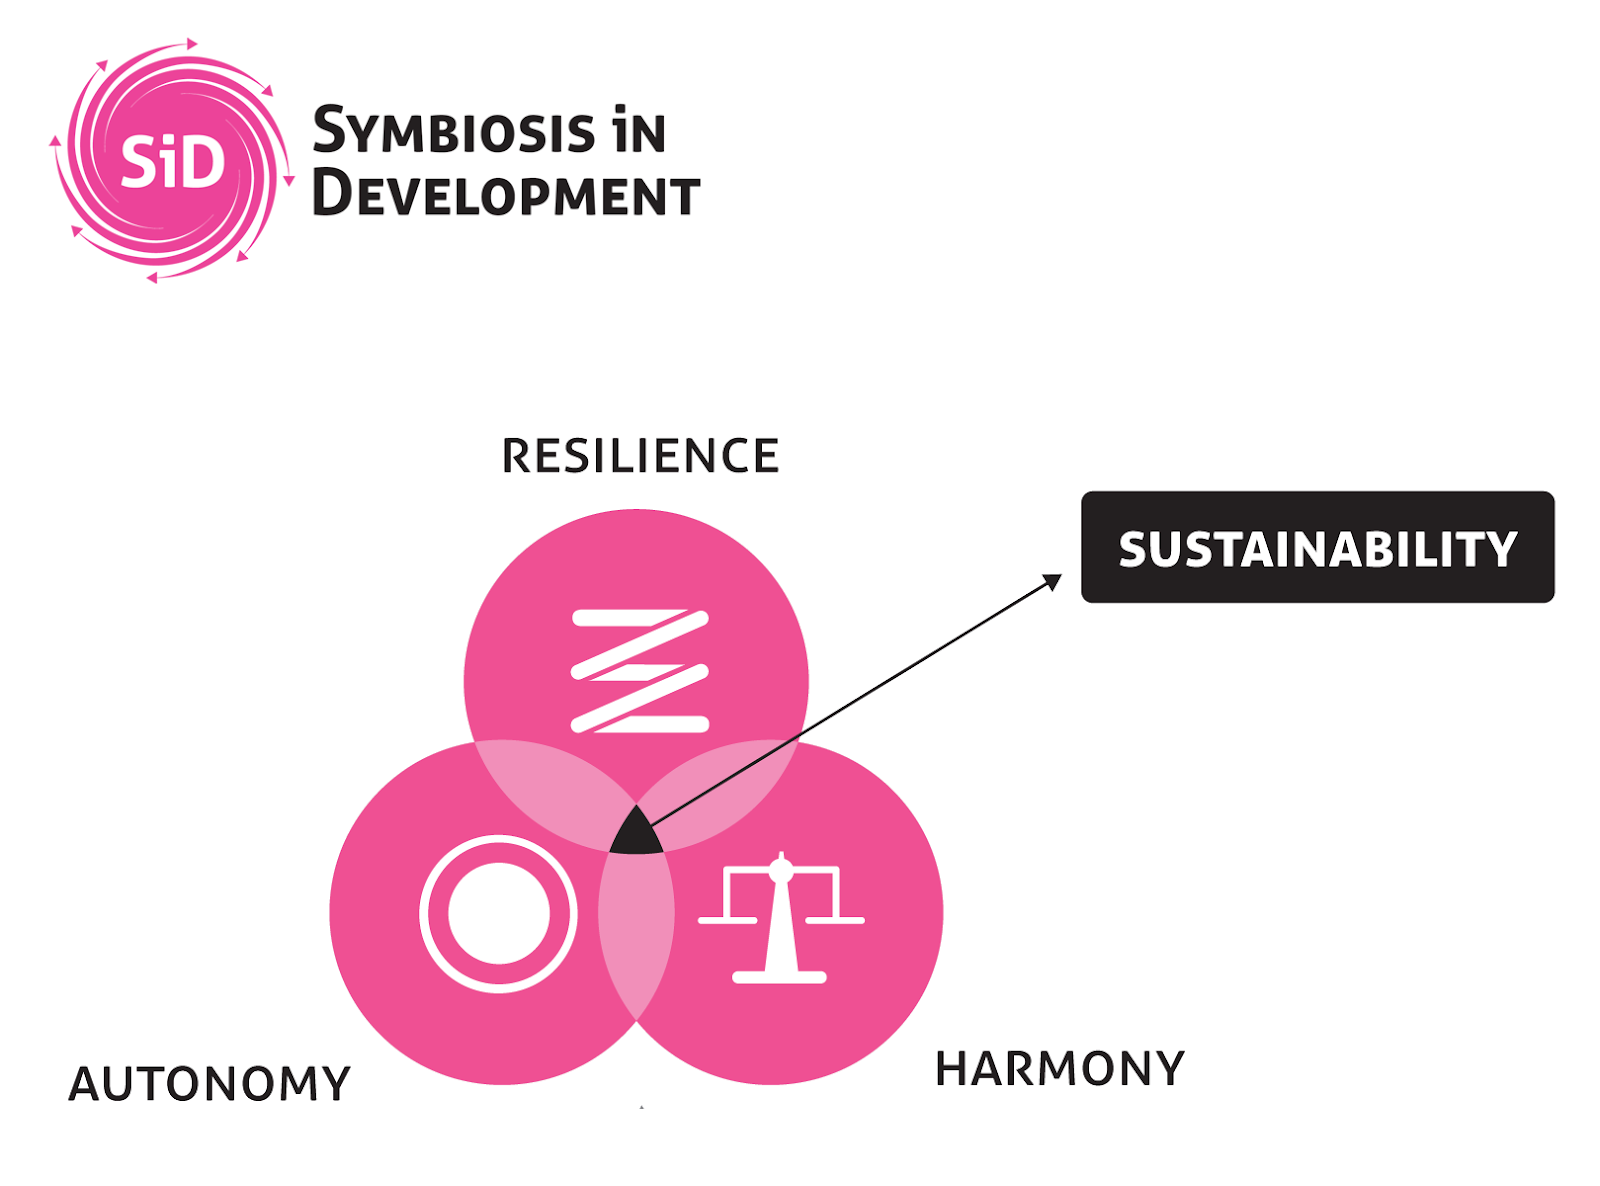 Diagram representing key components of the Symbiosis in Development framework: resilience, autonomy, and harmony